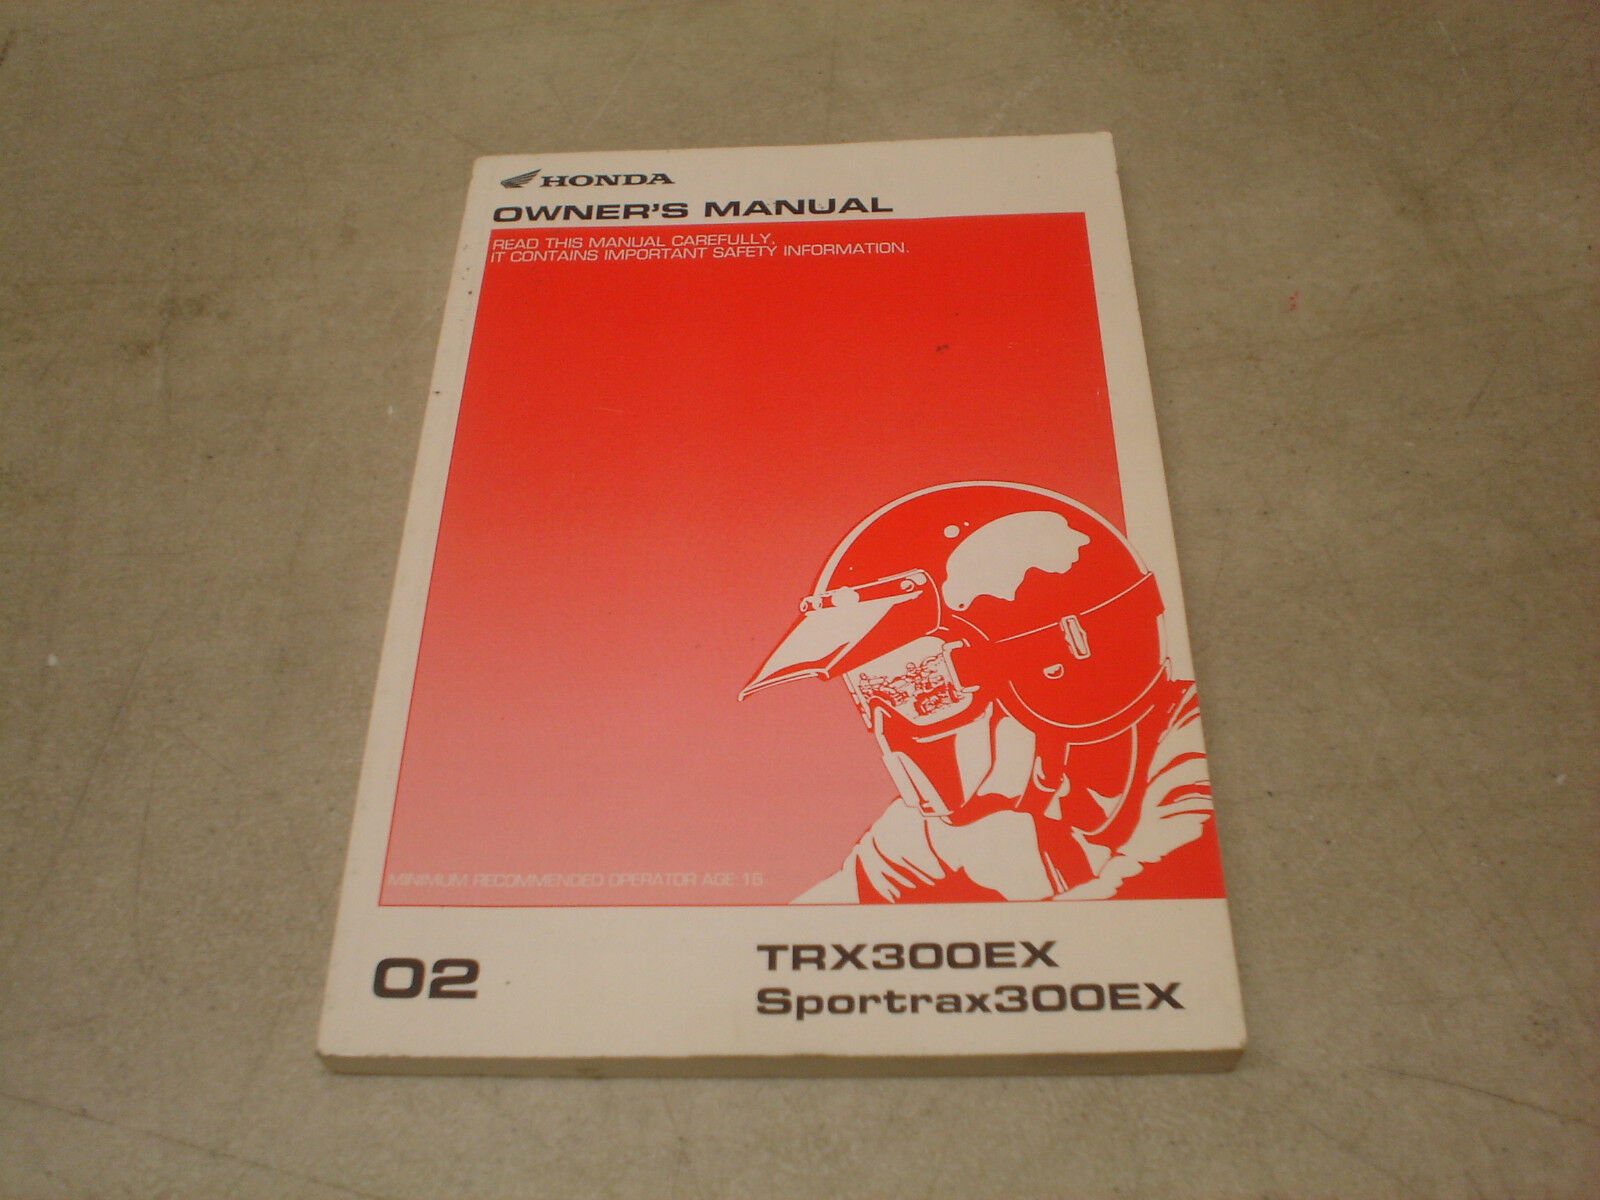 Honda OEM 2002 TRX300EX Sportrax Owners Manual 31HM3690 1 of 1Only 1  available ...